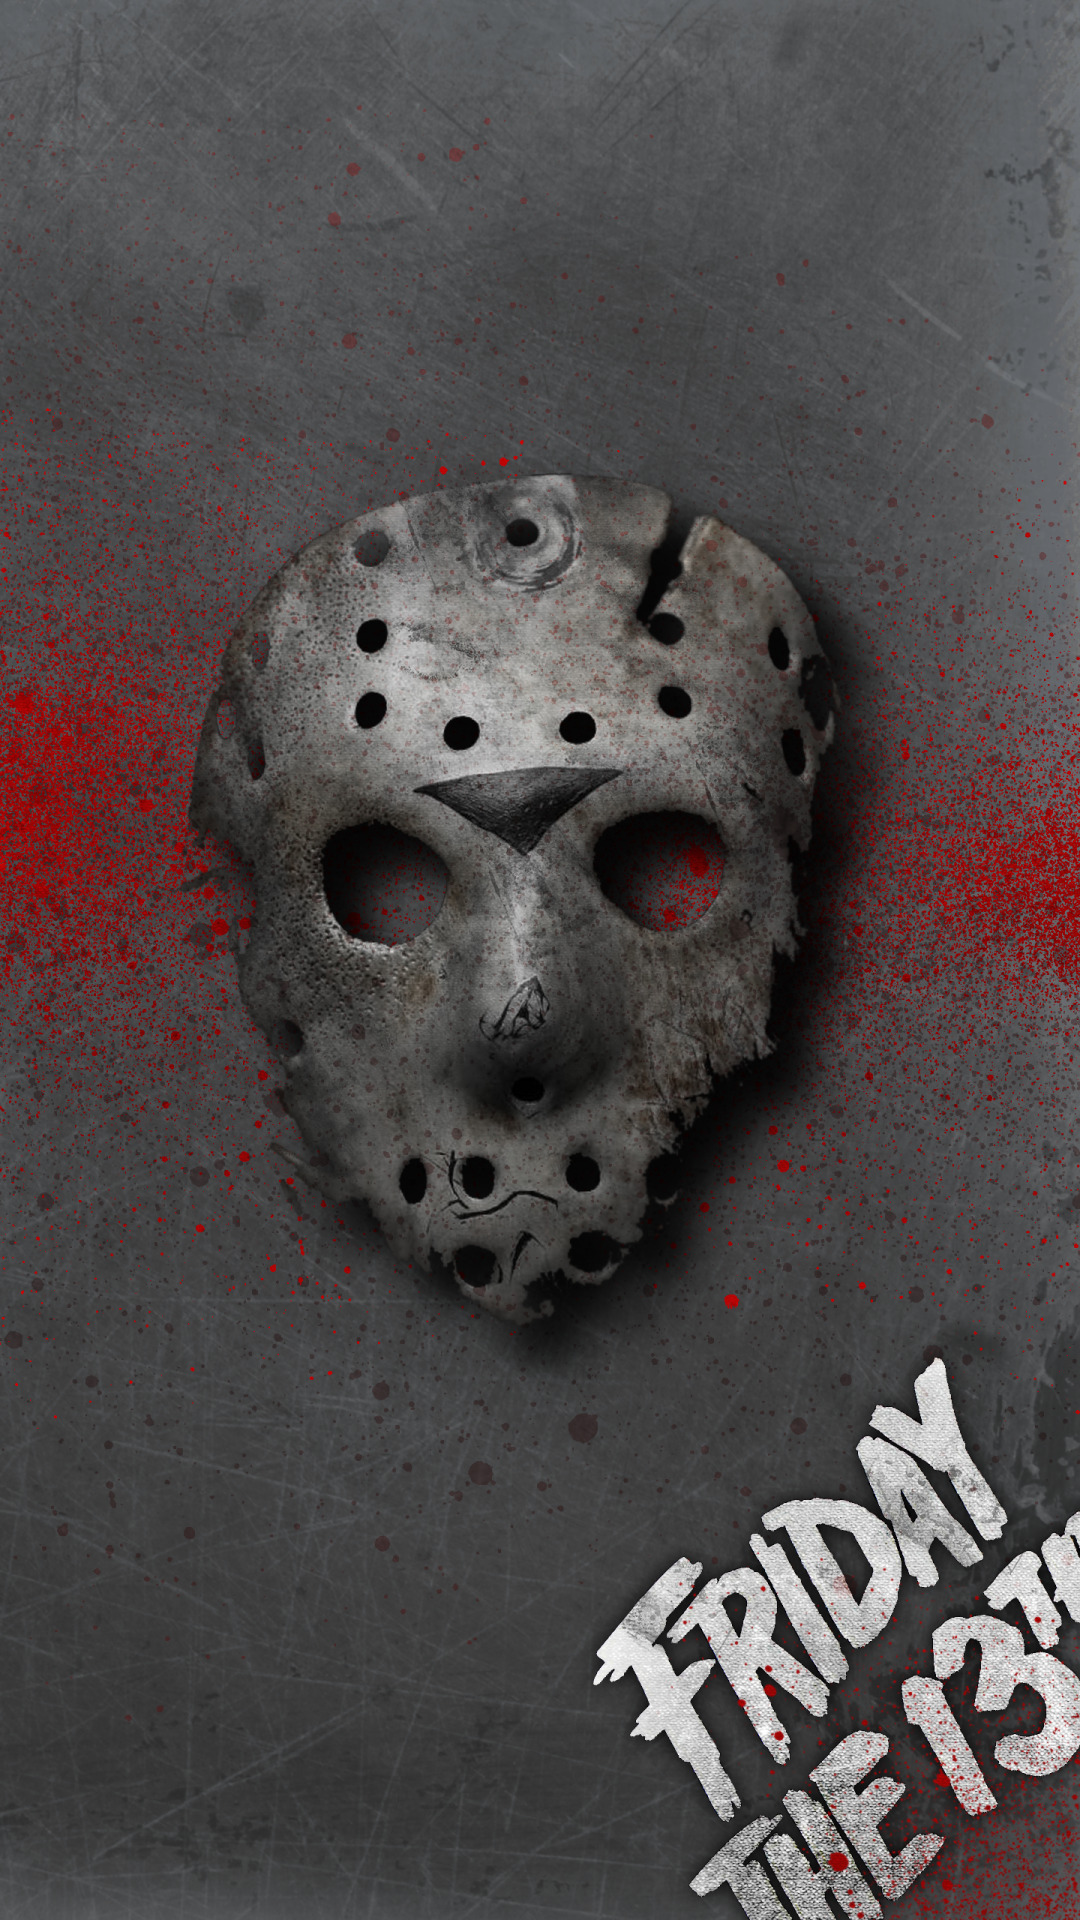 friday the 13th6